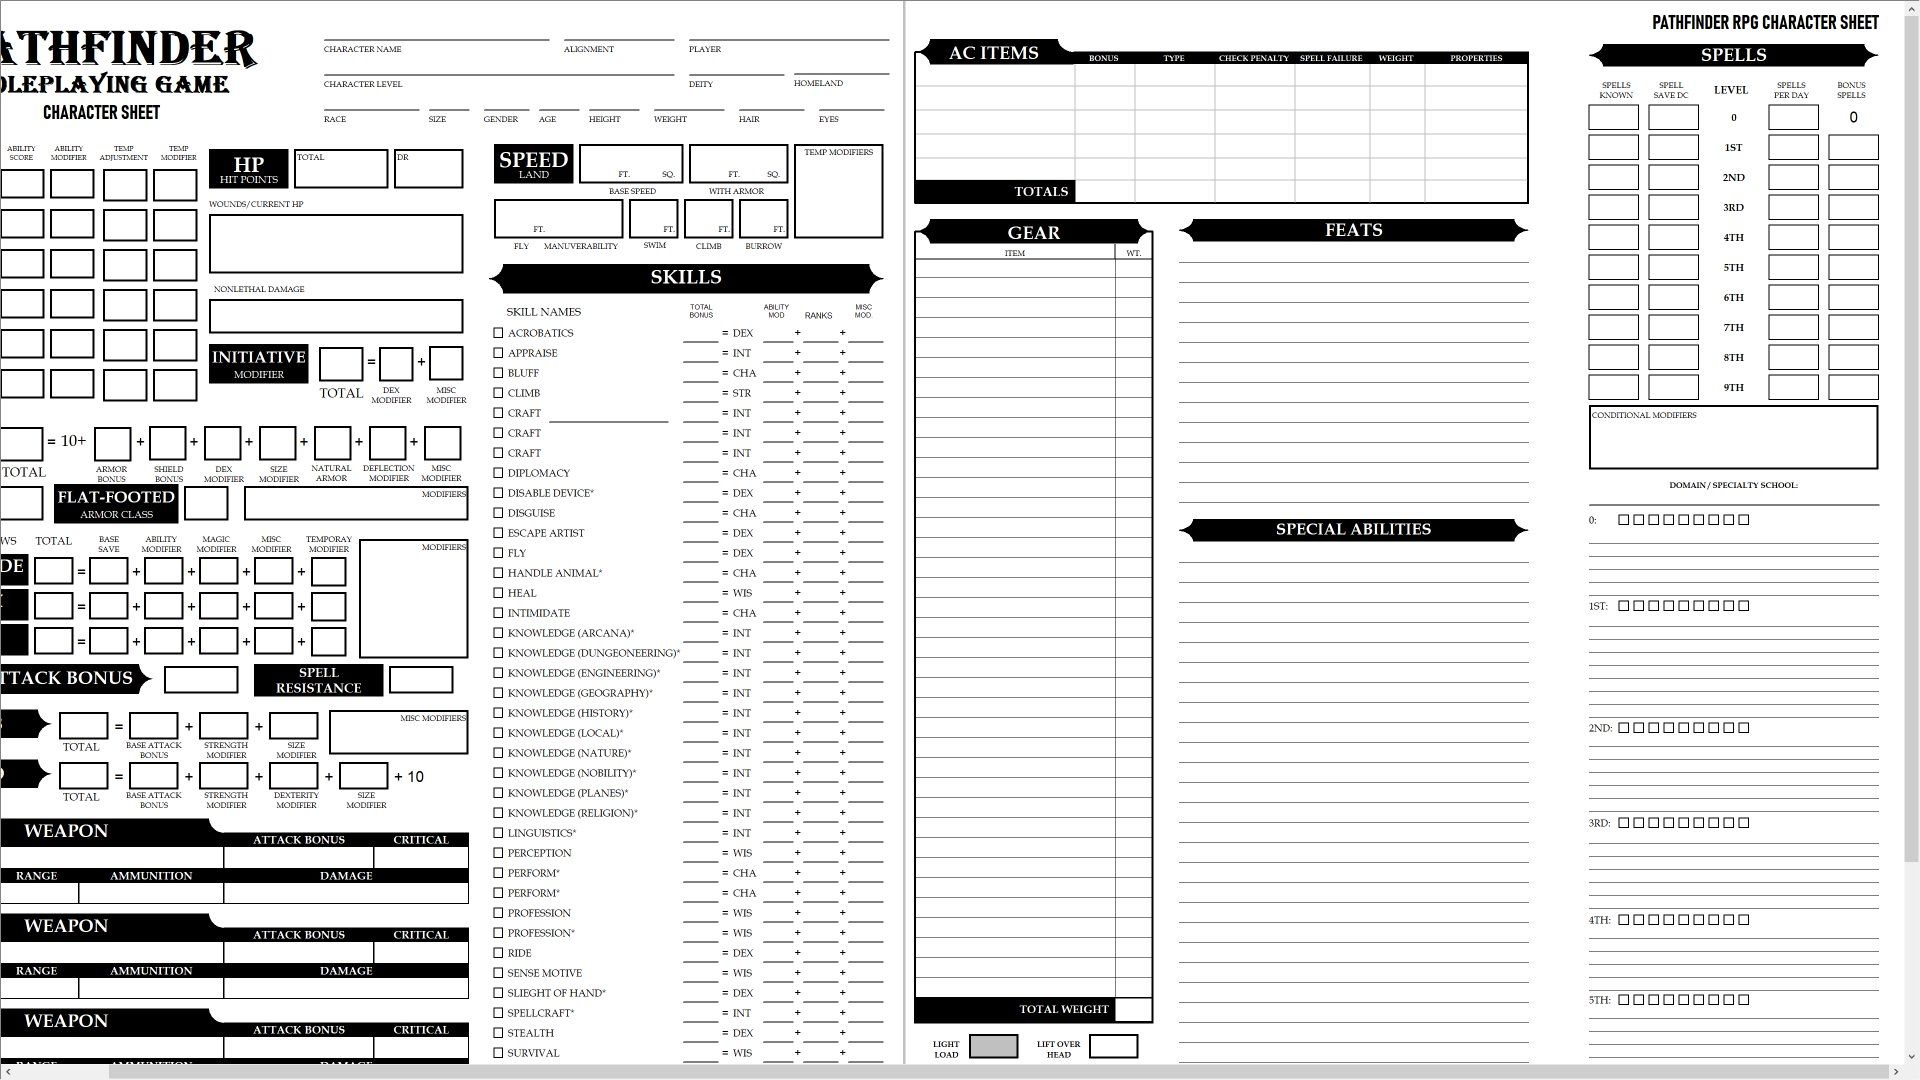 picture relating to Pathfinder Character Sheet Printable identified as Pattern Pathfinder persona sheet. SheetScribe is currently being utilized